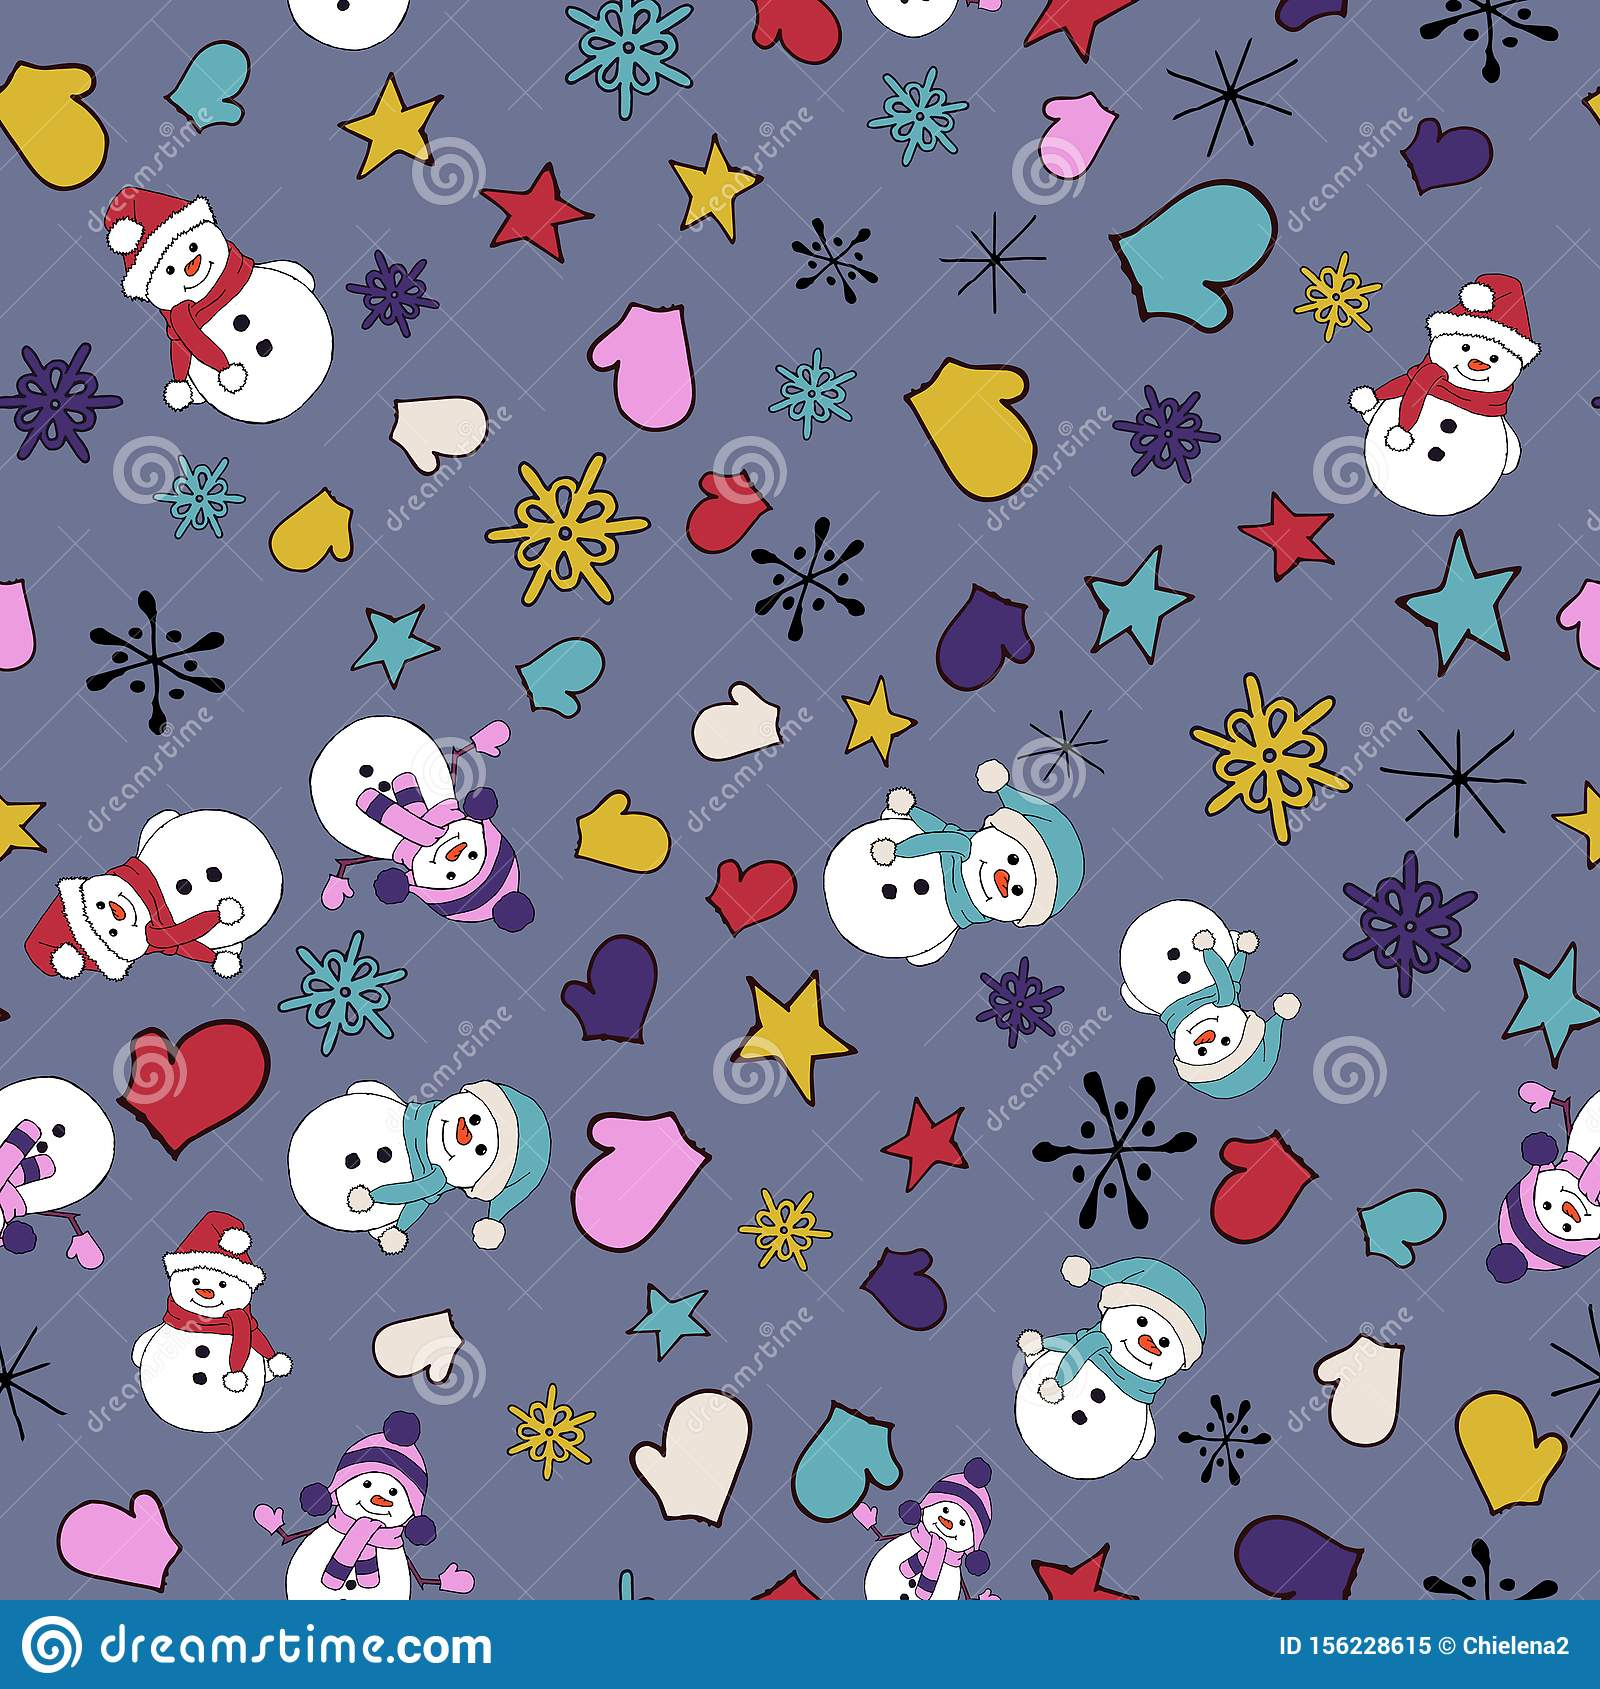 Christmas seamless pattern with snowman, fir trees and snowflakes. Perfect for wallpaper, wrapping paper, pattern fills